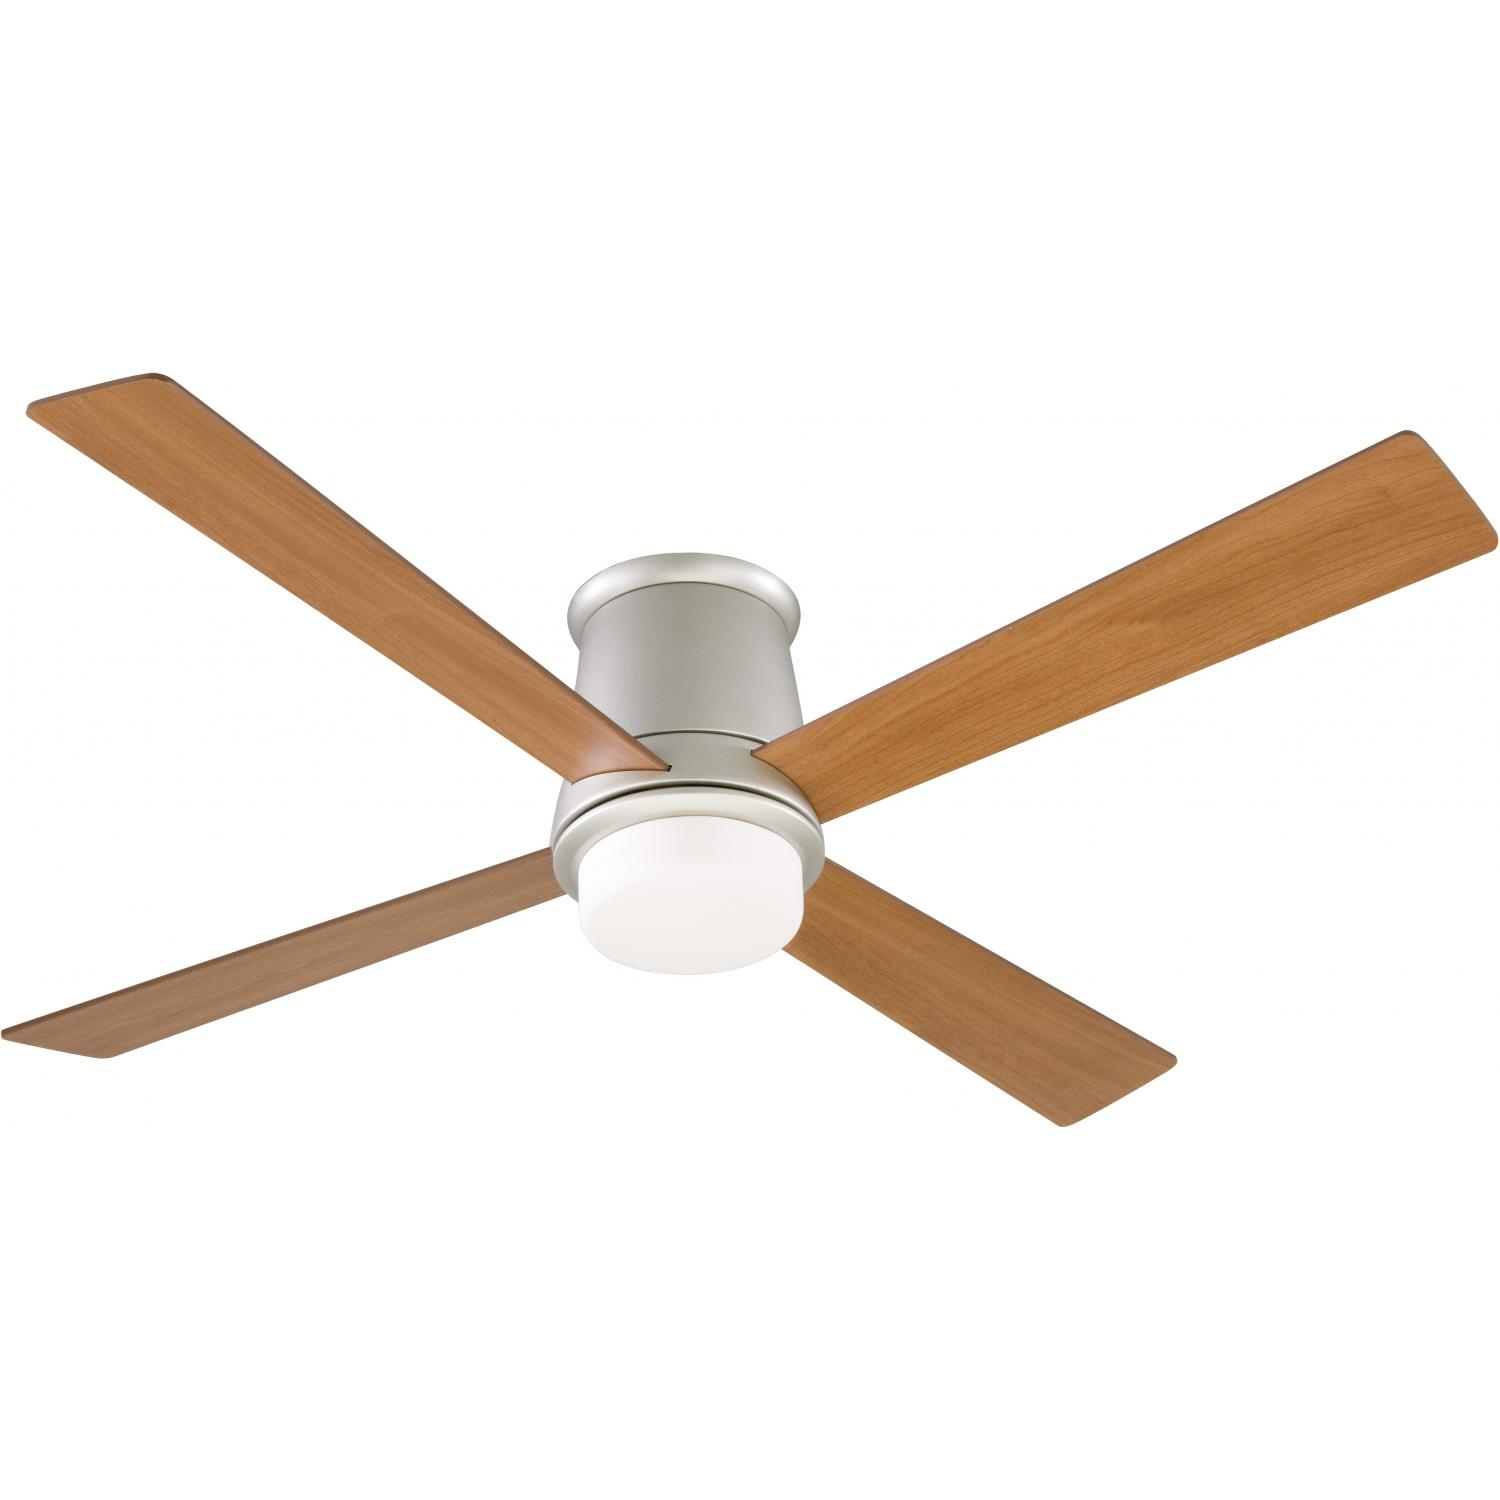 840506052758 Upc Fanimation Fps7880 Sn Inlet Ceiling Fan